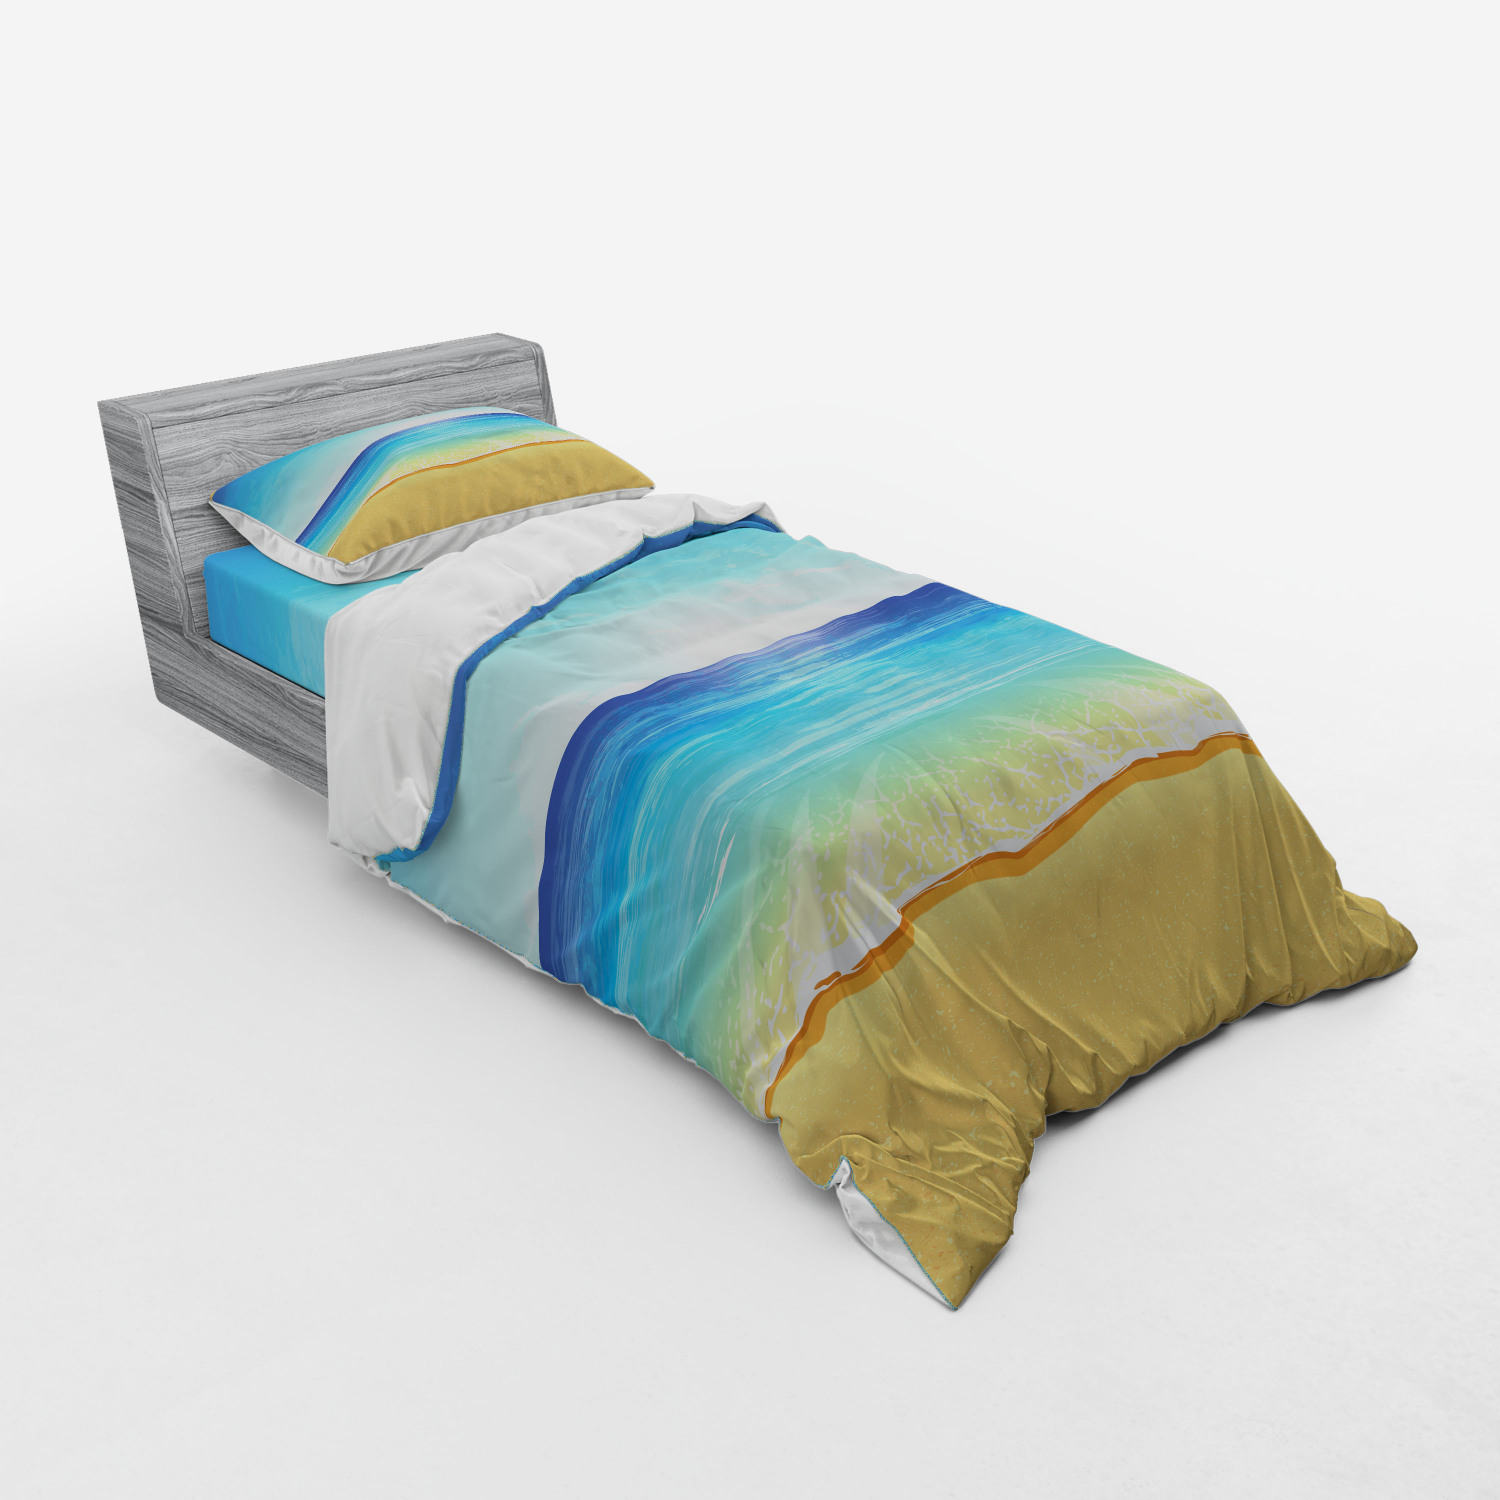 thumbnail 65 - Ambesonne Summer Bedding Set Duvet Cover Sham Fitted Sheet in 3 Sizes